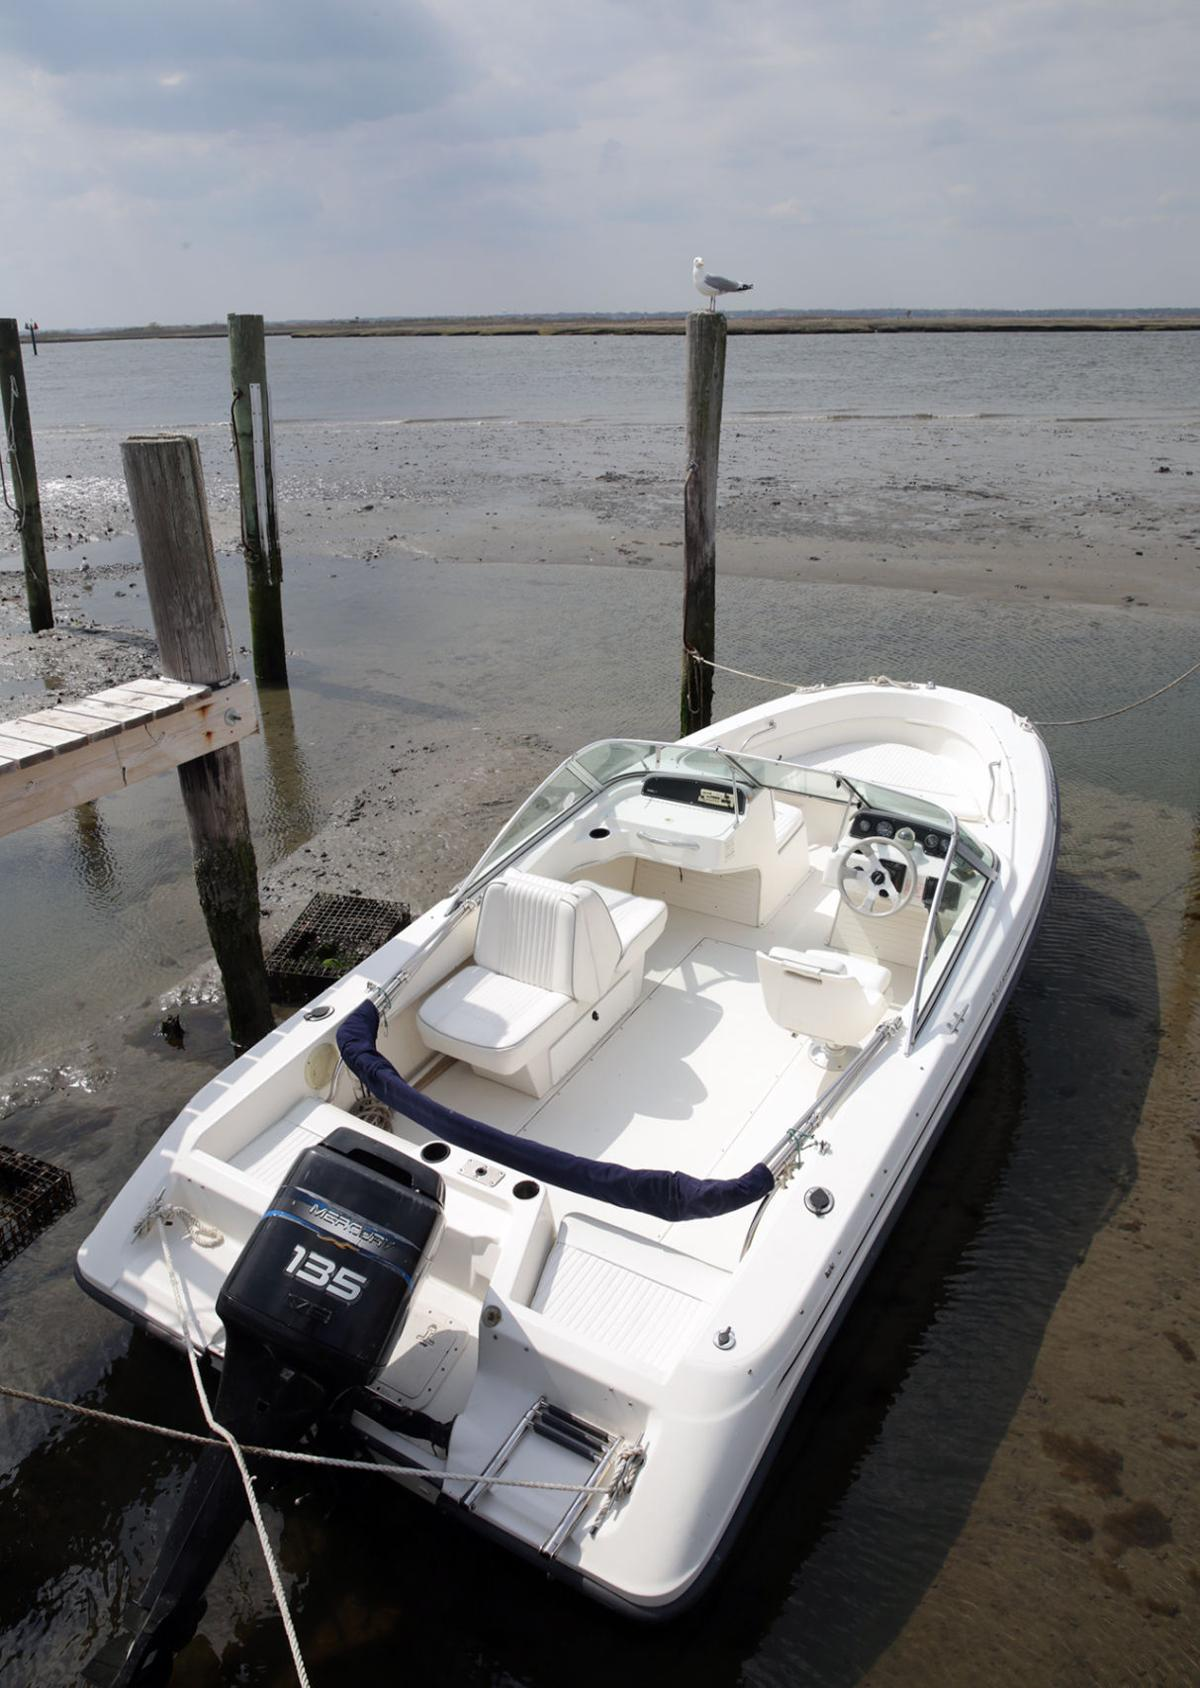 margate u0027s undredged waterways have residents stuck for answers